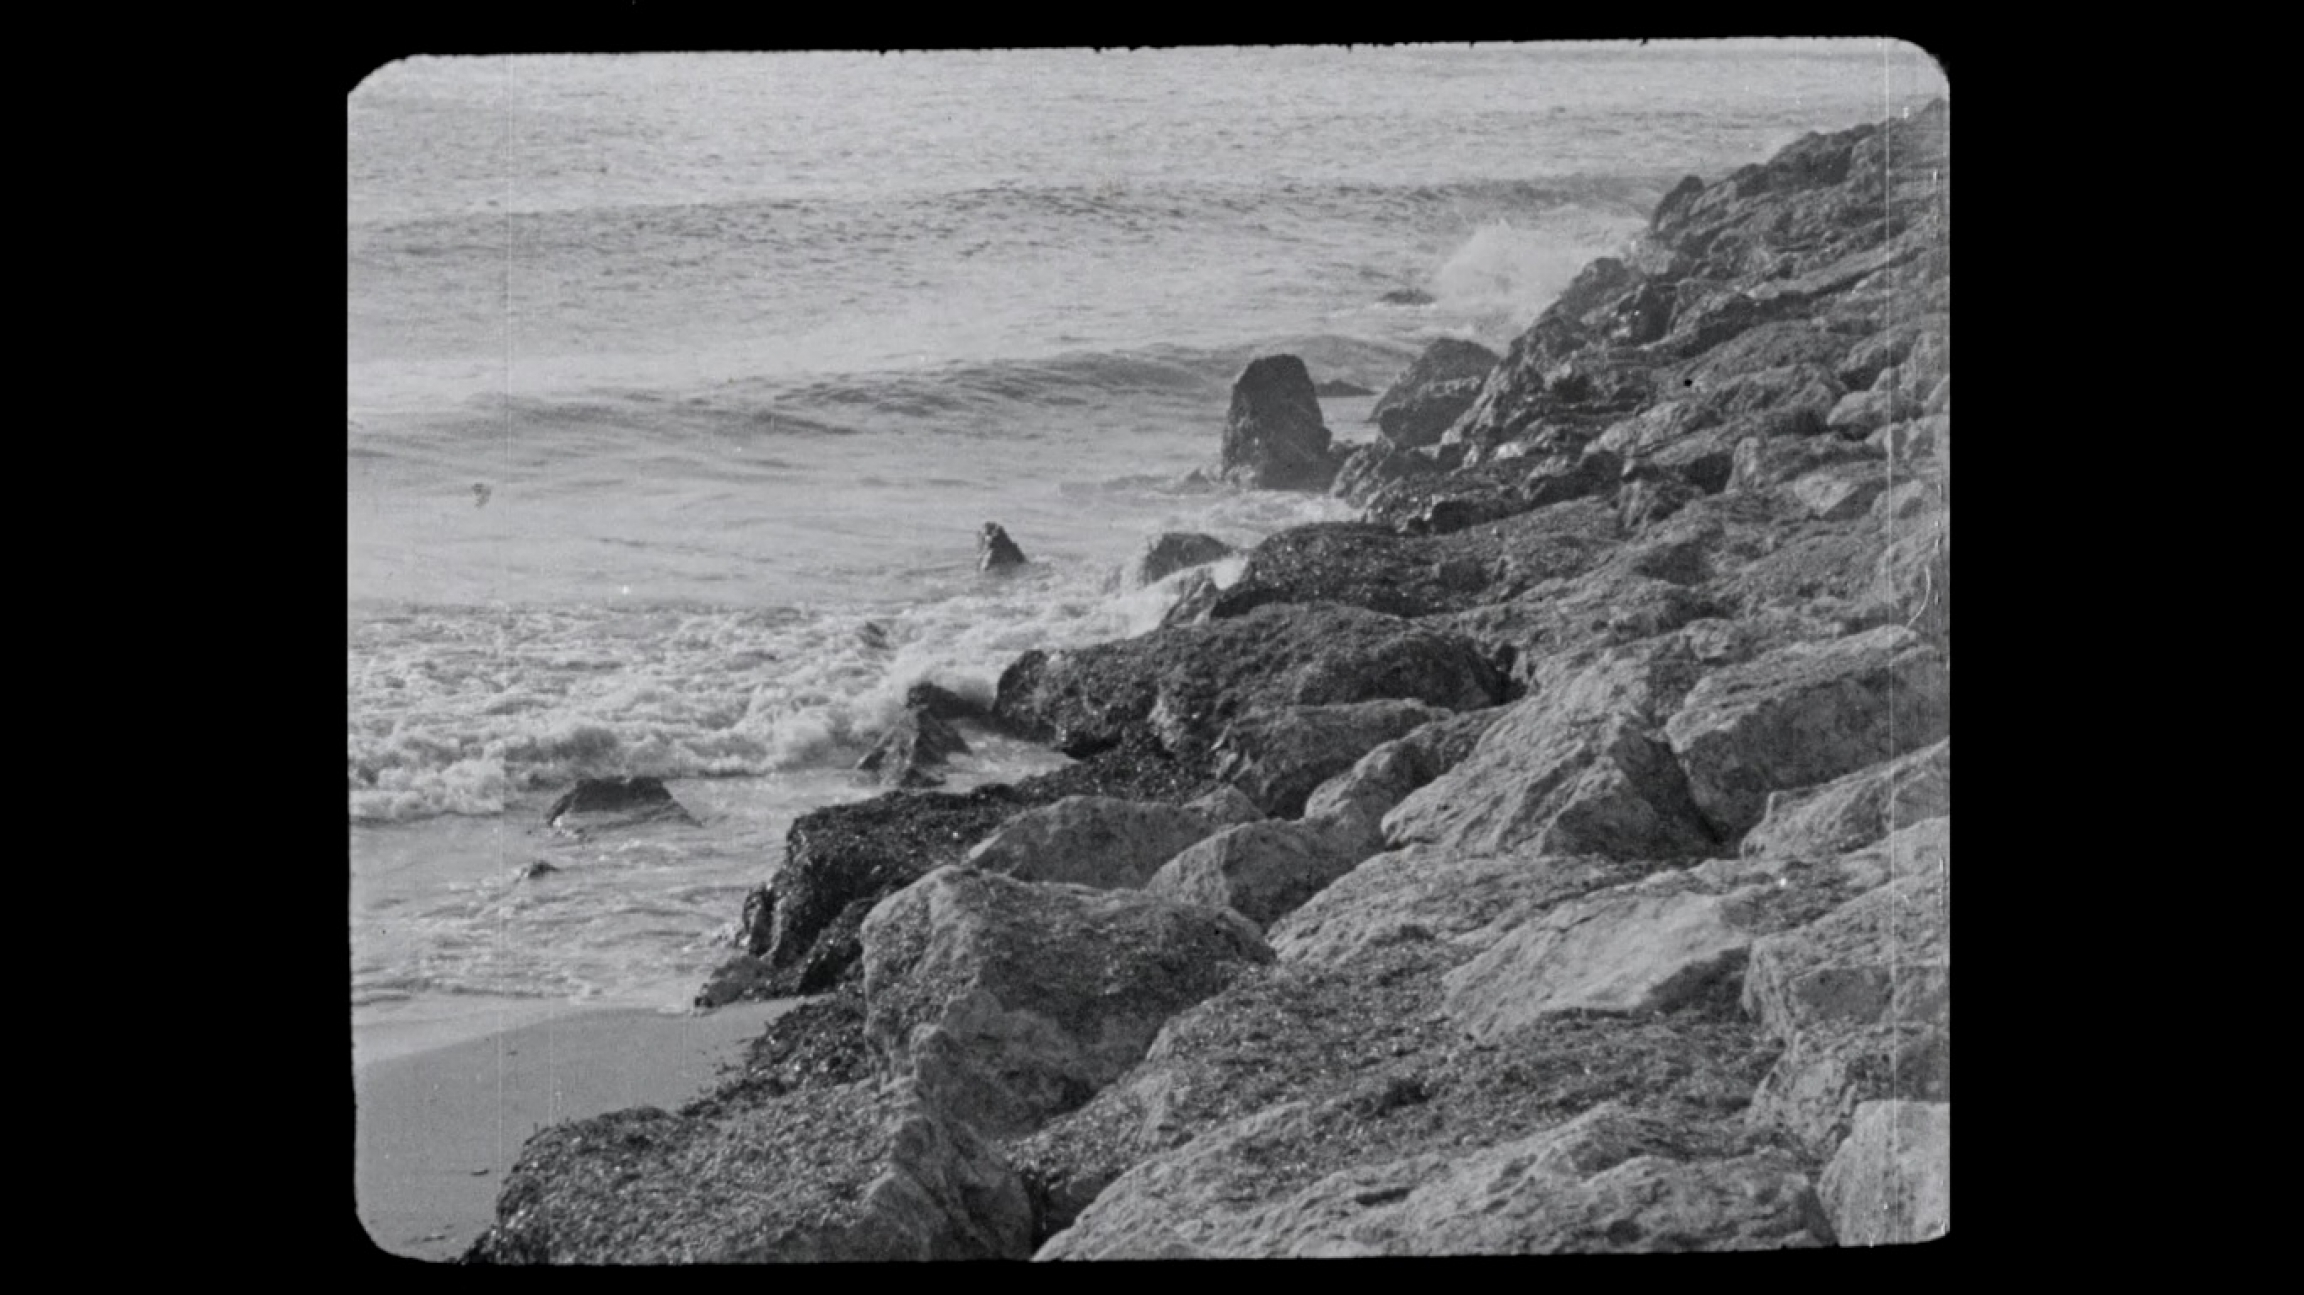 A seaside image from a black and white film.